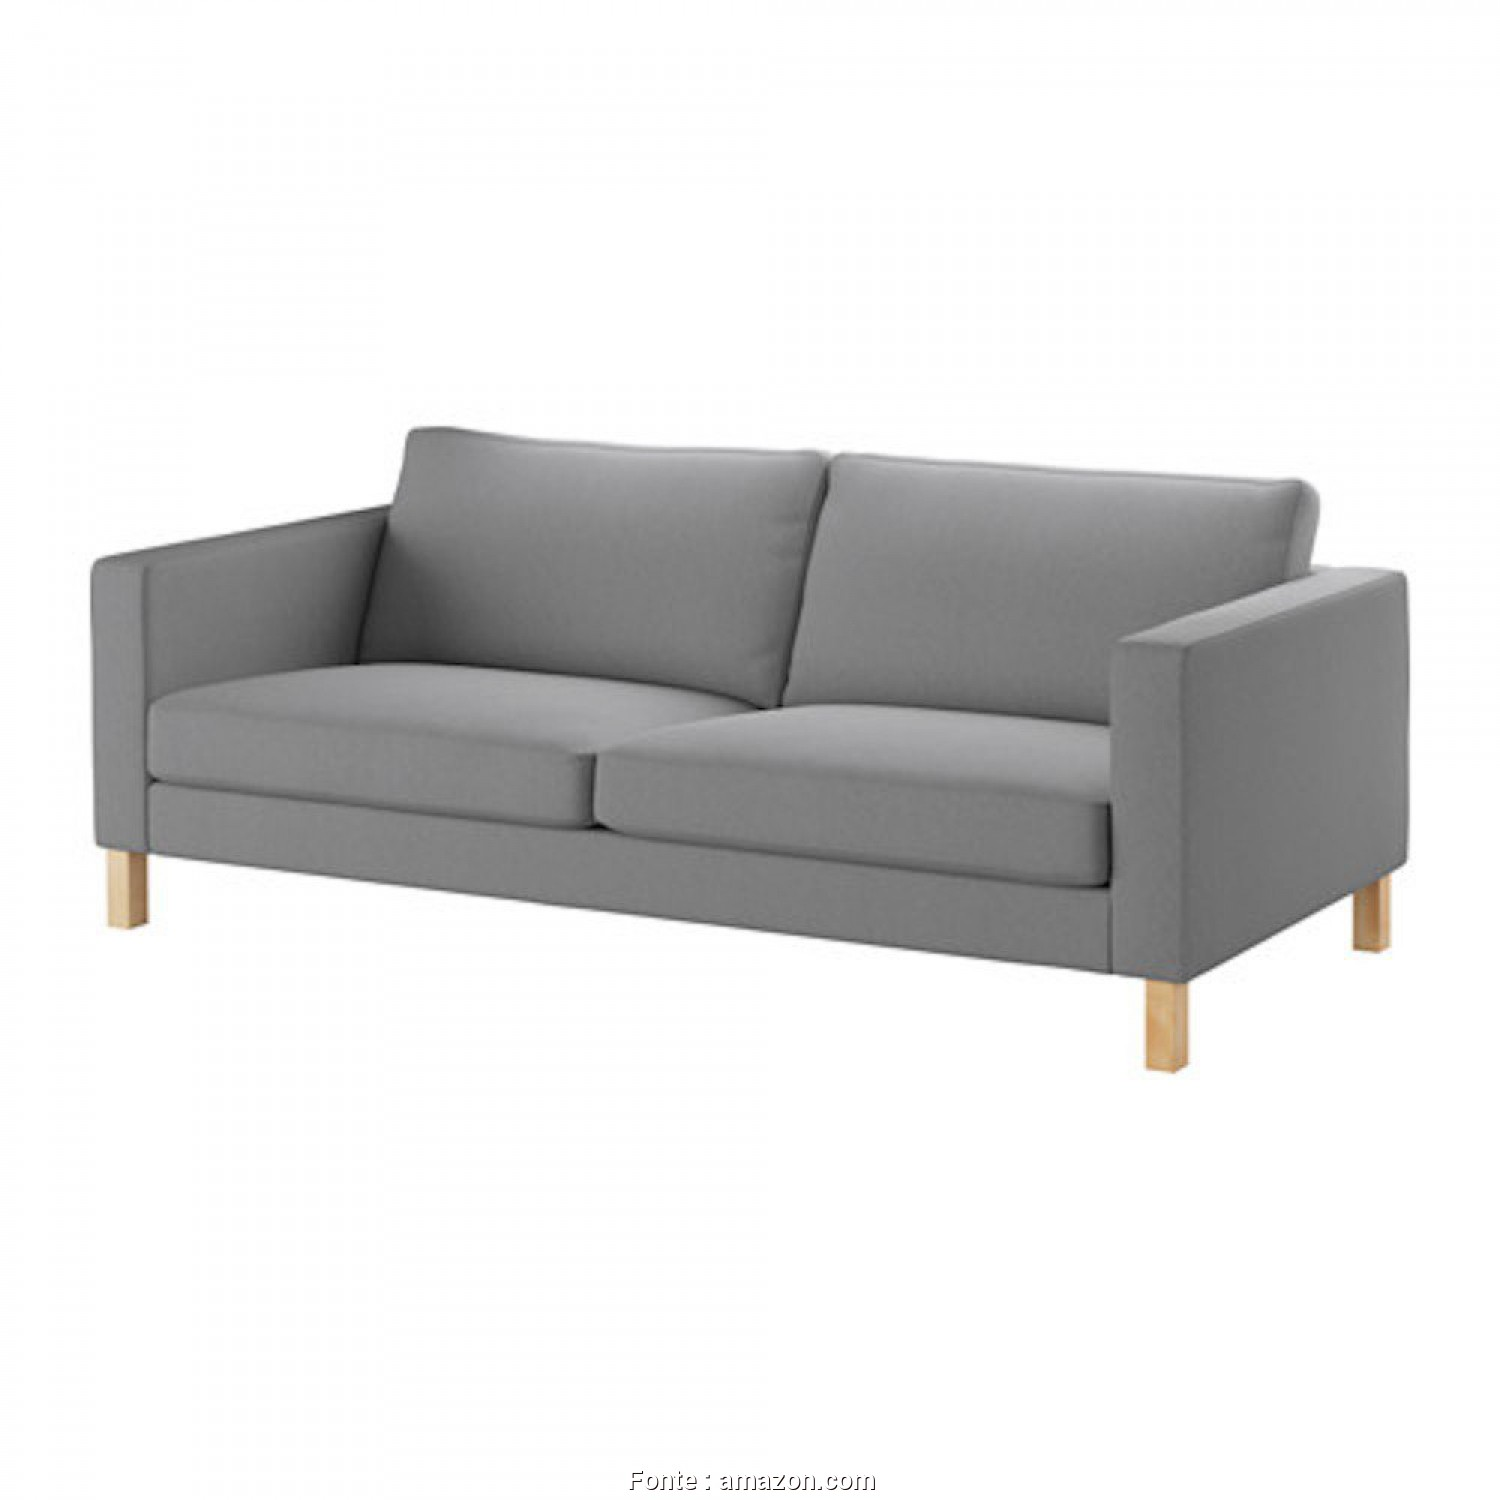 Futon 2 Places Ikea, Eccezionale Amazon.Com: Ikea KARLSTAD Sofa Cover Slipcover, Knisa Light Gray Grey, 603.230.16 [Exact, Cover, IKEA Karlstad Knisa Light Gray Only]: Home & Kitchen